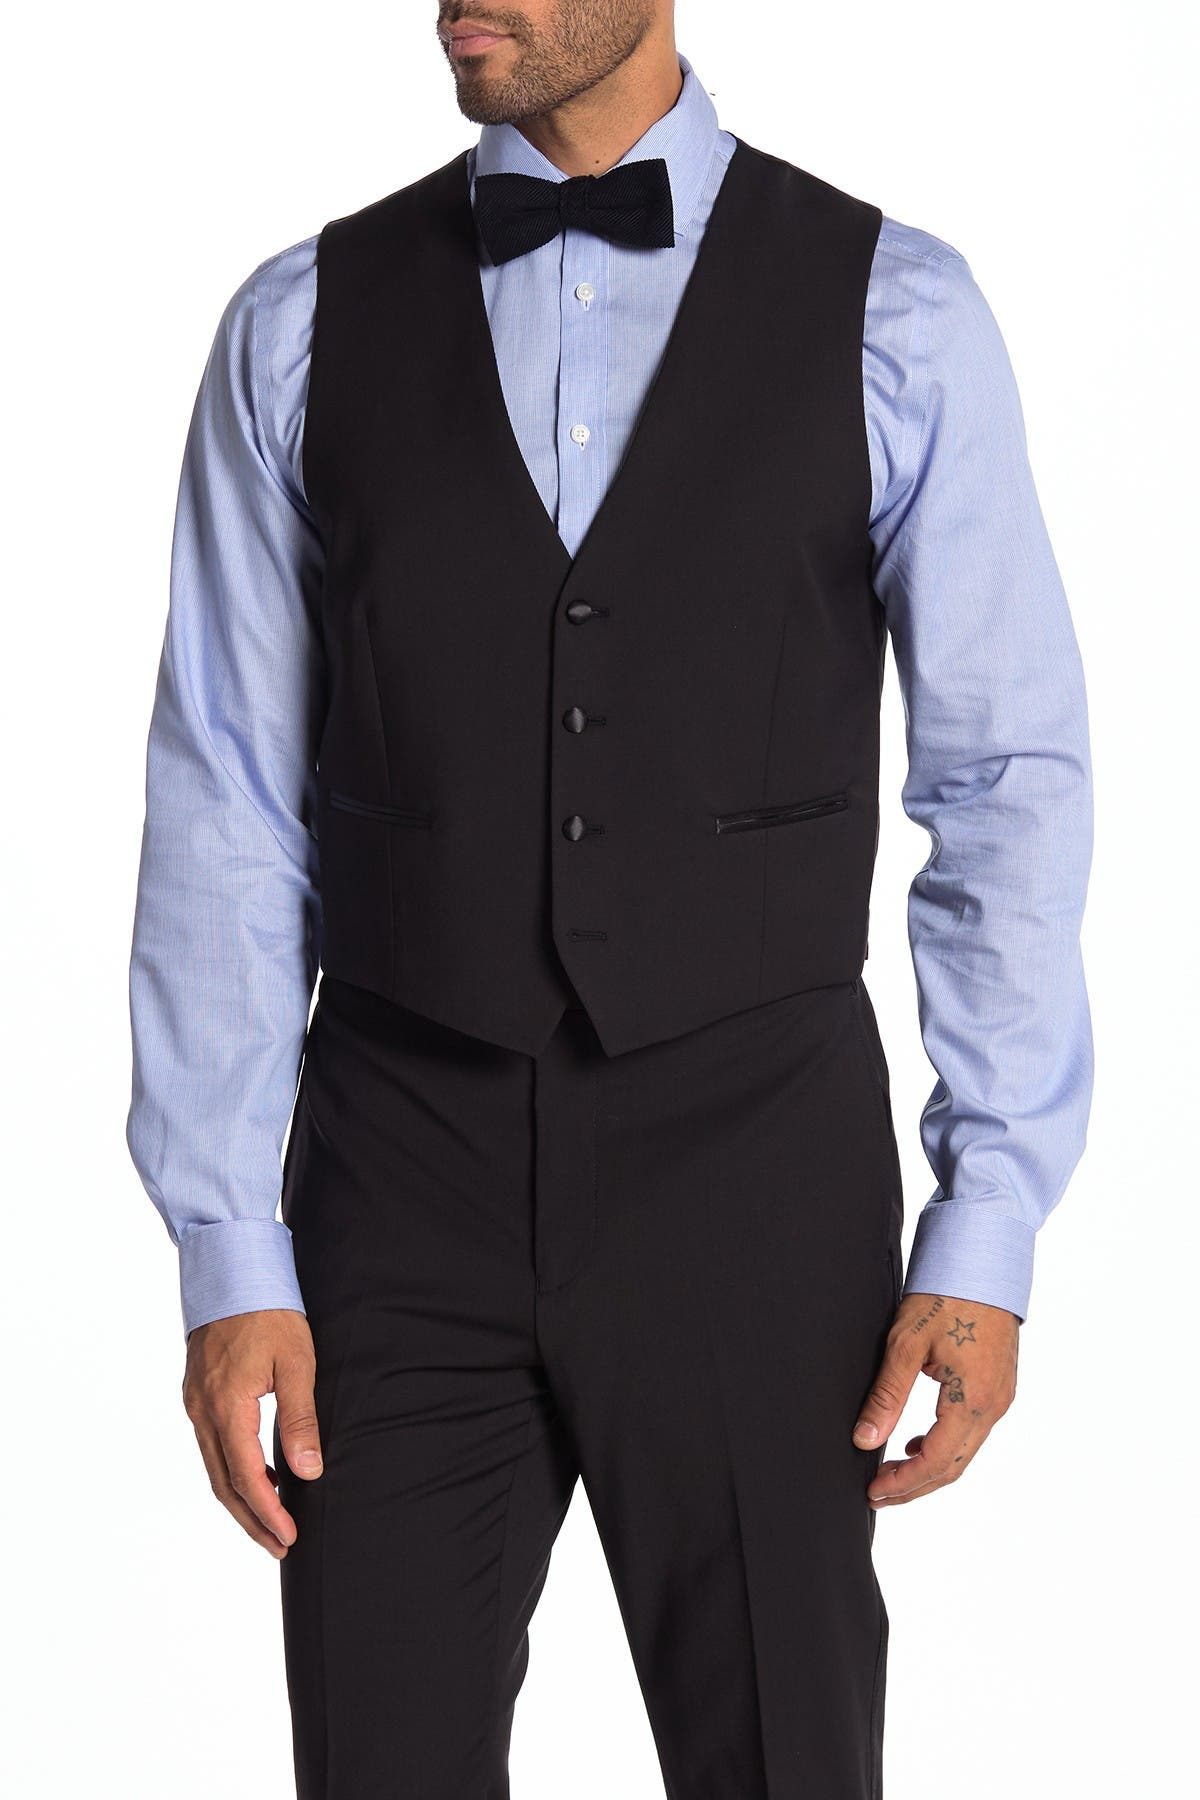 Image of Calvin Klein Plain Black Slim Fit Suit Separate Vest